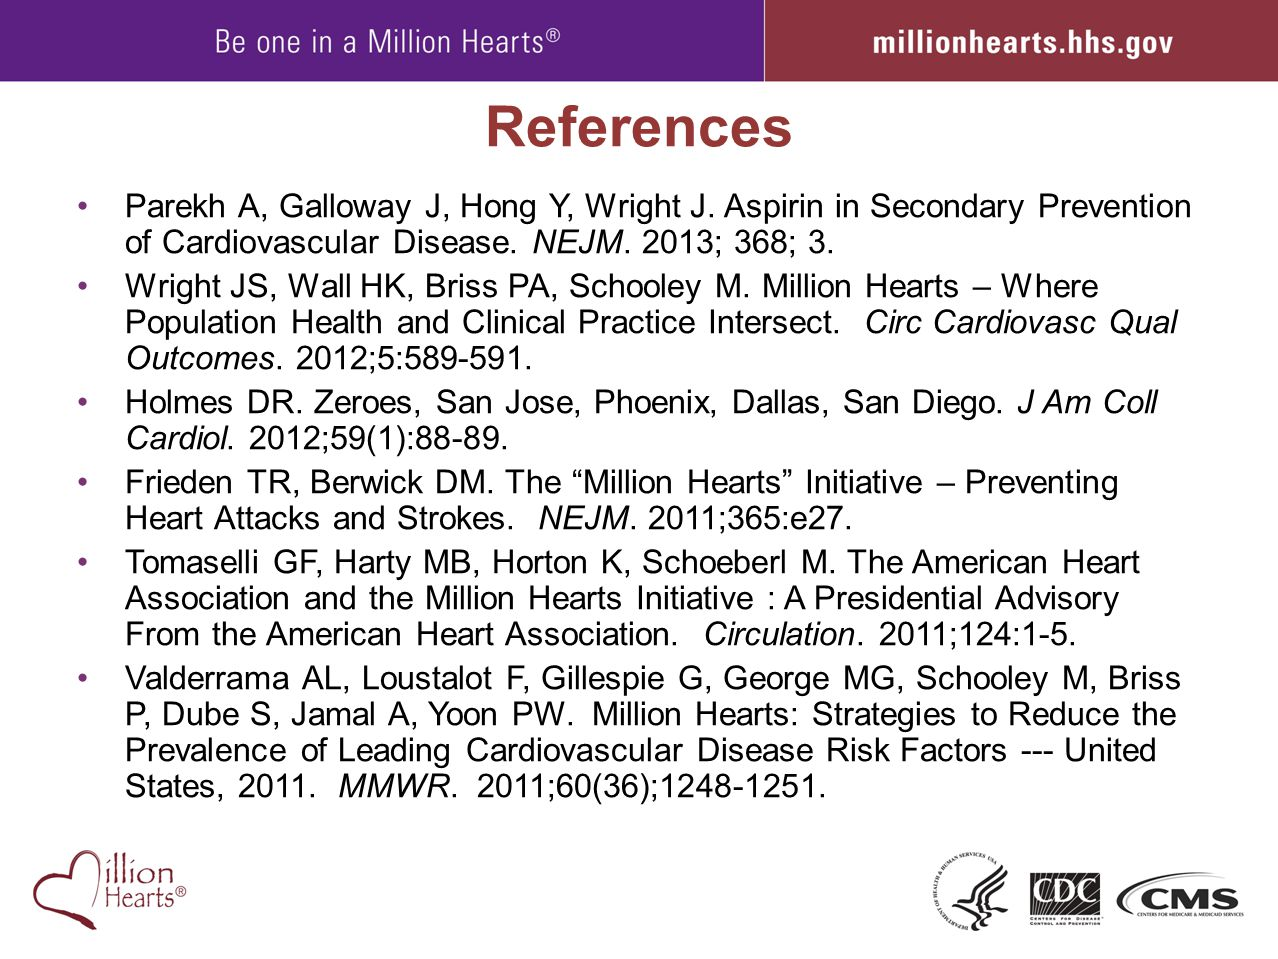 References Parekh A, Galloway J, Hong Y, Wright J. Aspirin in Secondary Prevention of Cardiovascular Disease. NEJM. 2013; 368; 3.